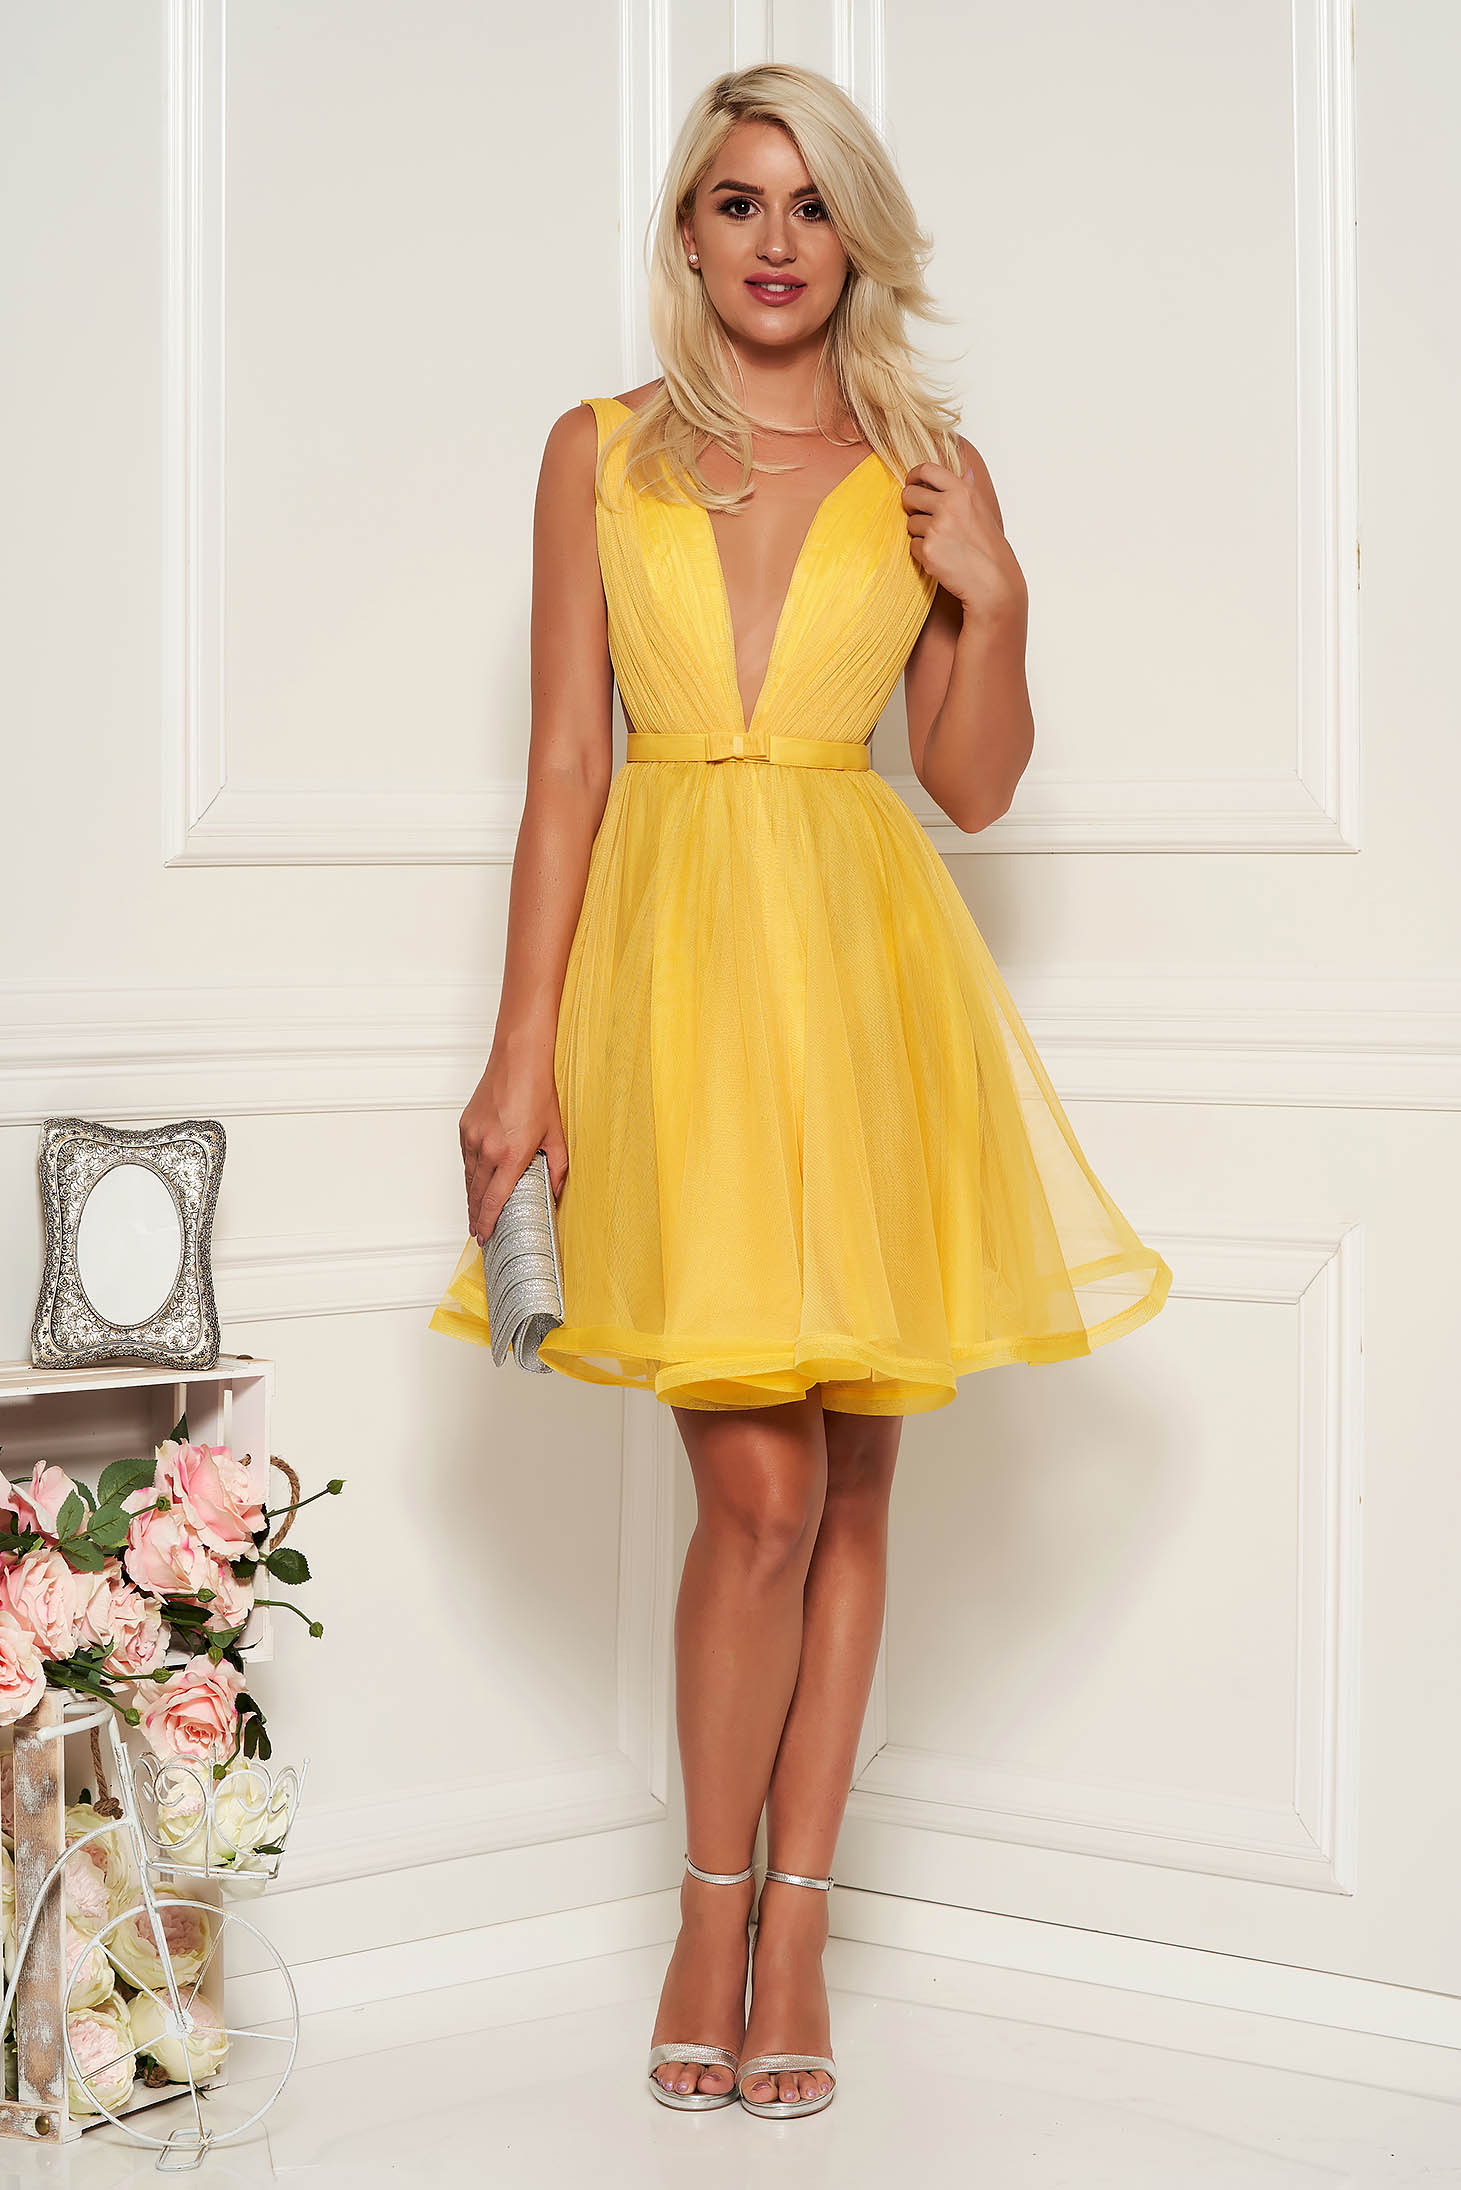 Ana Radu cloche yellow luxurious dress with a cleavage from tulle with inside lining accessorized with tied waistband